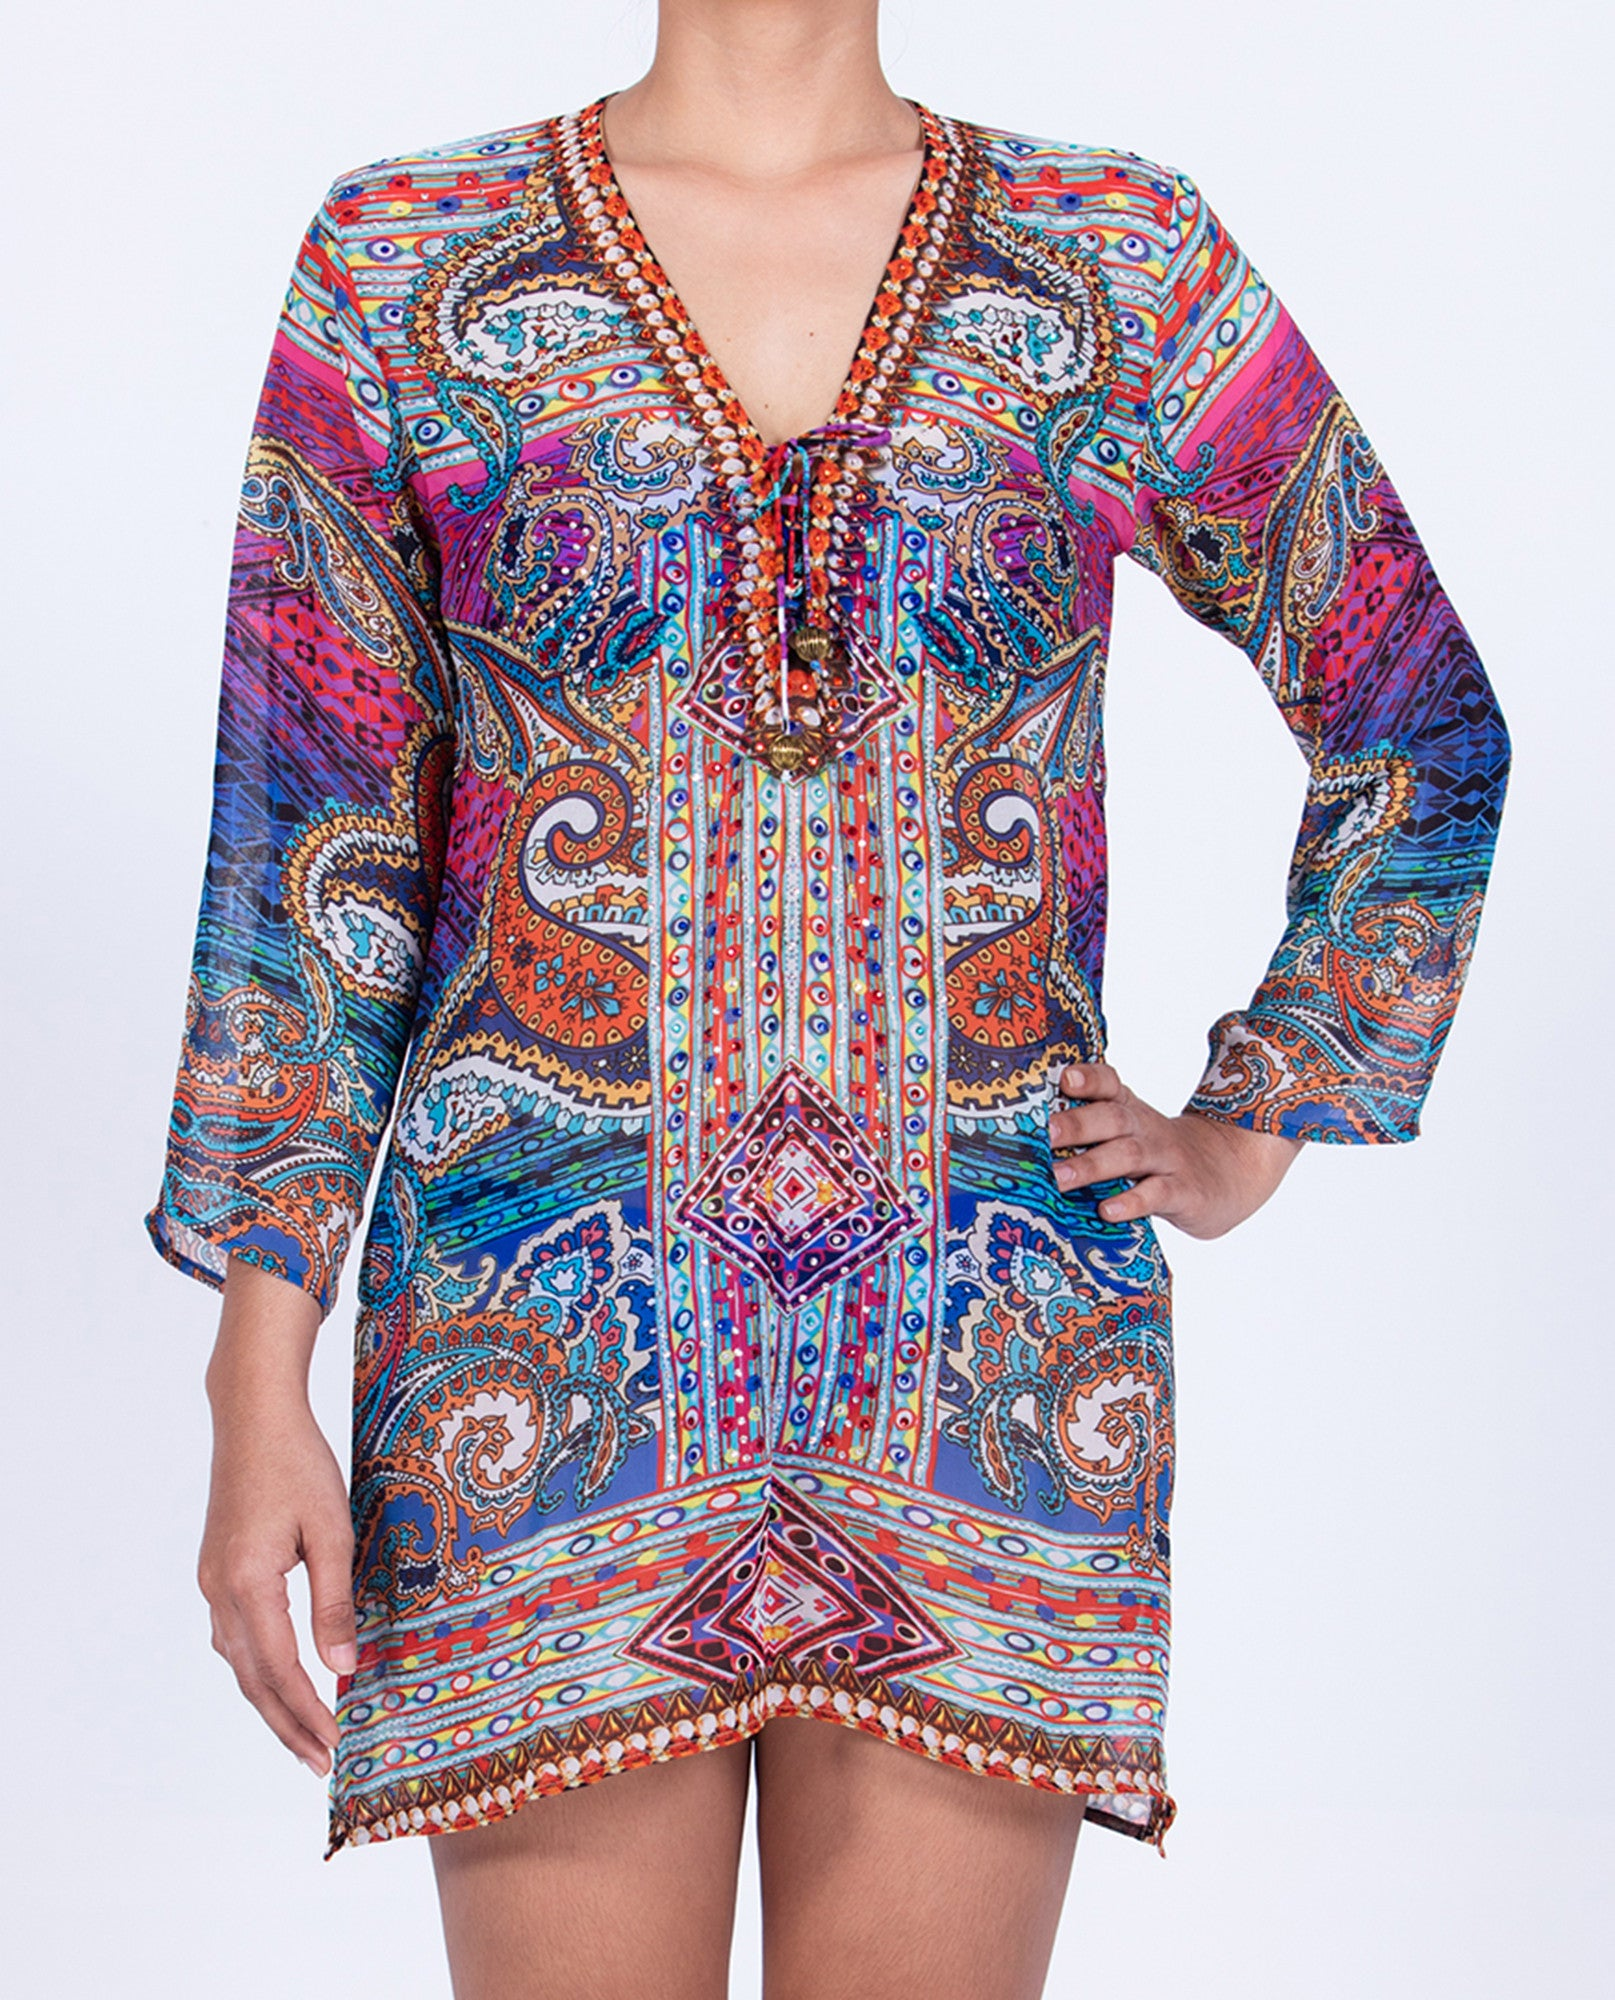 Indian Inspired Tunic Lace-up V-neck - Multi Colored Paisley Pattern